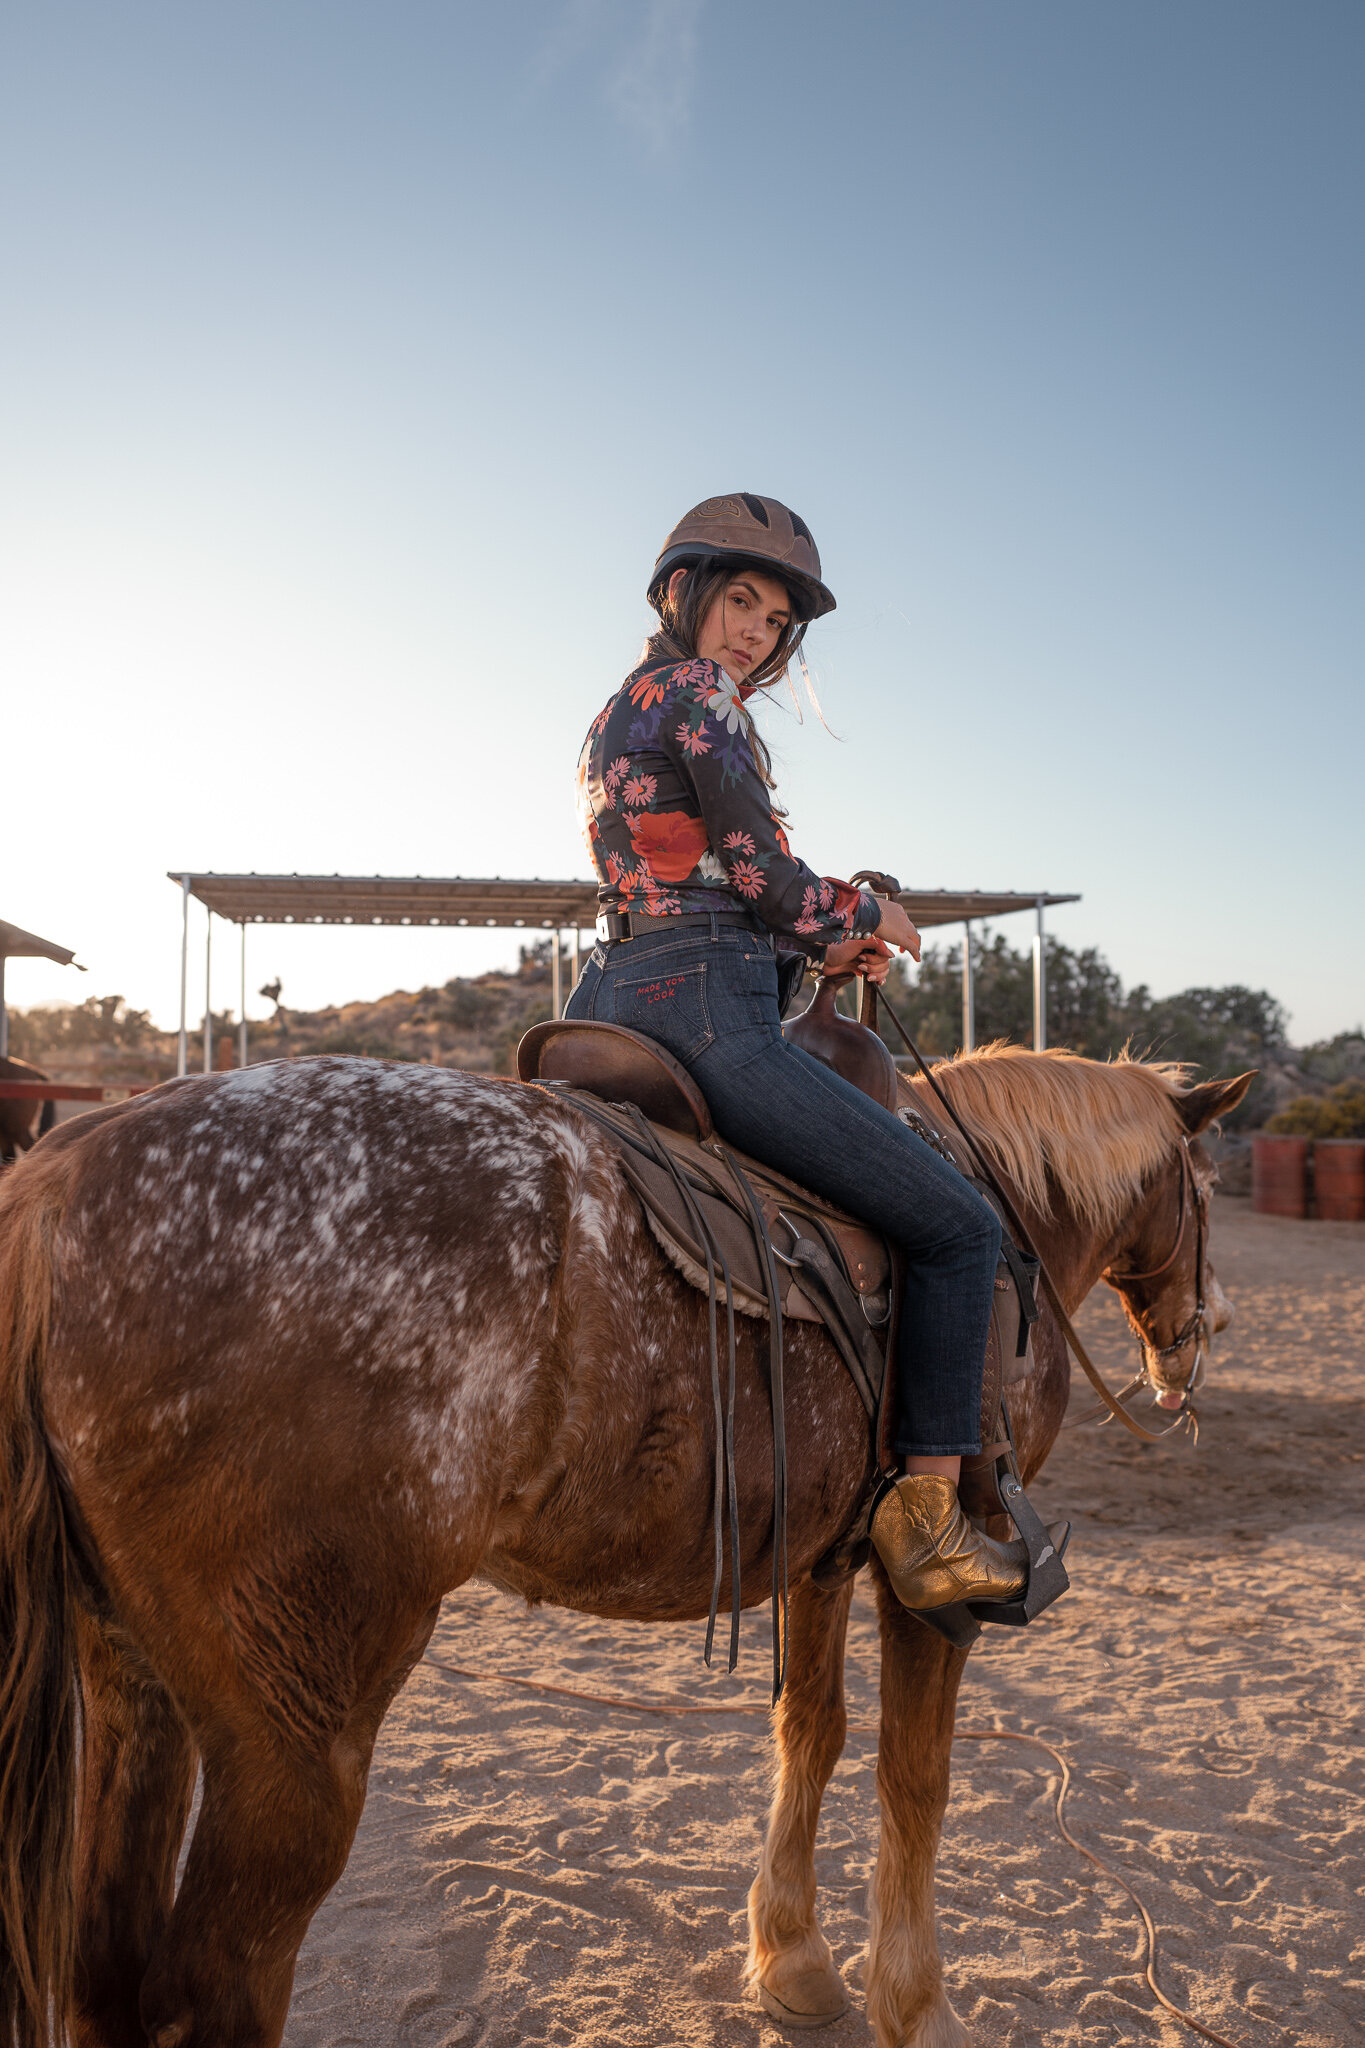 horseback riding in Joshua tree knob hill ranch Joshua tree guide Julia friedman